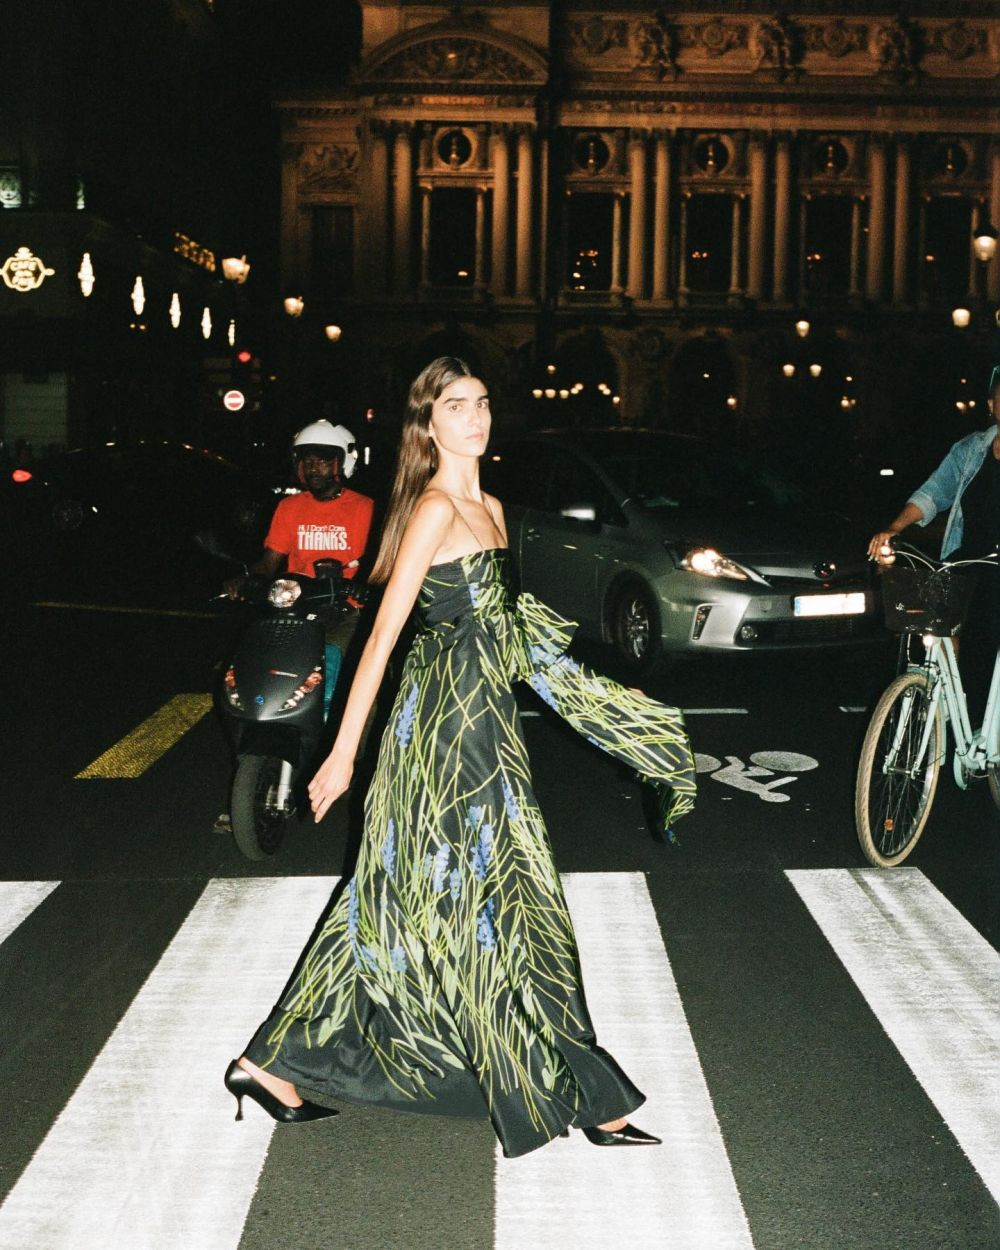 LATE NIGHT STROLLS THROUGH PARIS DONE THE BERNADETTE WAY ~ This SS22 collection we invite you to fantasize about your dream holiday, the BERNADETTE journey has only just begun.  Model @rebecasolana_  Photography @jonasunger  Art direction and styling @gijsjeribbens  Hair/Makeup @suzanneverberk  Production @annegoossens_com  Light assistant @paul.lehr  Styling assistant @santos_stylisme  The SS22 collection will be available in March/April and is now available for pre-order at BERNADETTEANTWERP.com.